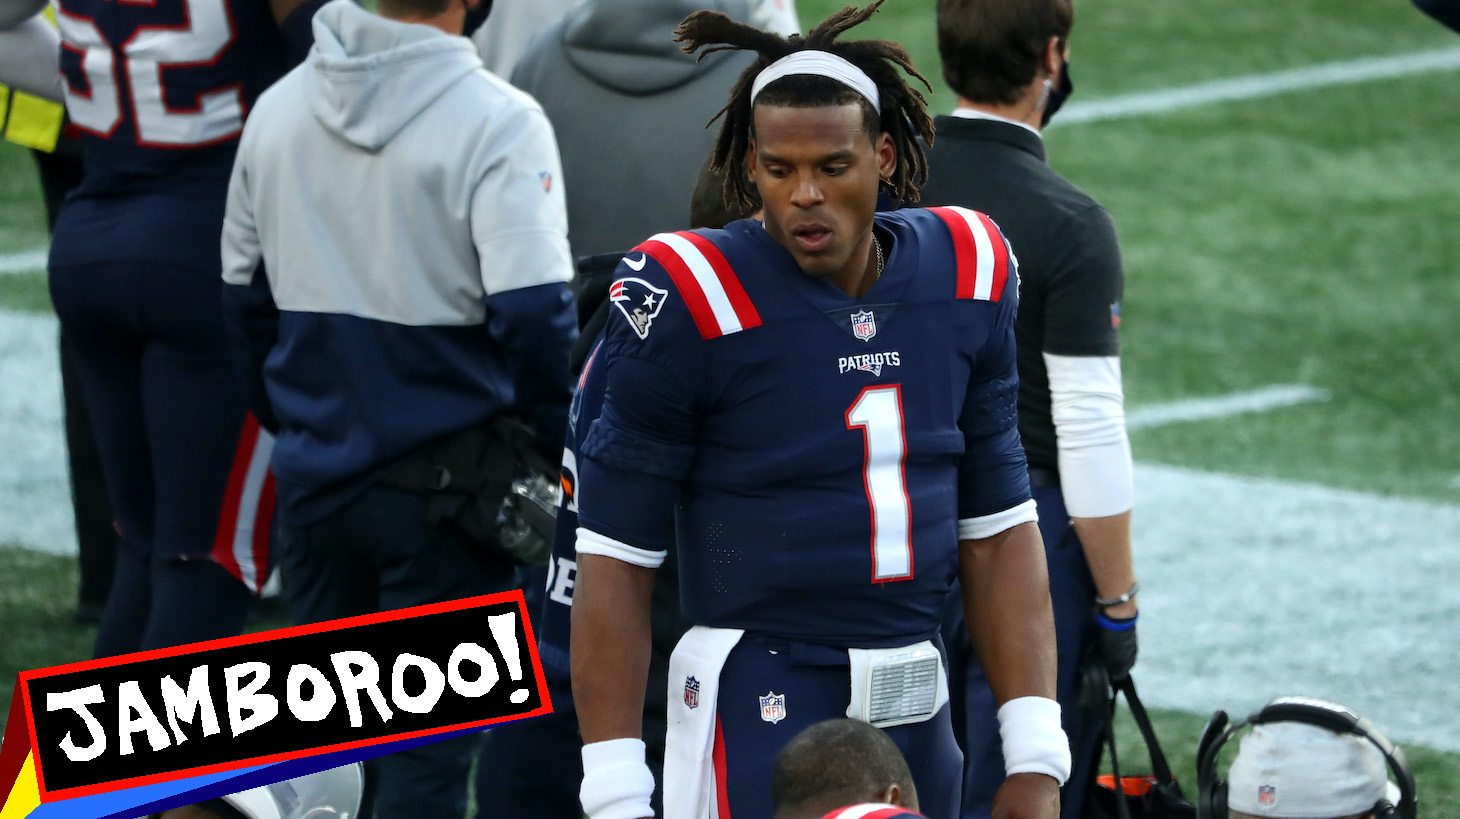 FOXBOROUGH, MASSACHUSETTS - OCTOBER 25:Cam Newton #1 of the New England Patriots looks on from the bench during the game against the San Francisco 49ers at Gillette Stadium on October 25, 2020 in Foxborough, Massachusetts. (Photo by Maddie Meyer/Getty Images)